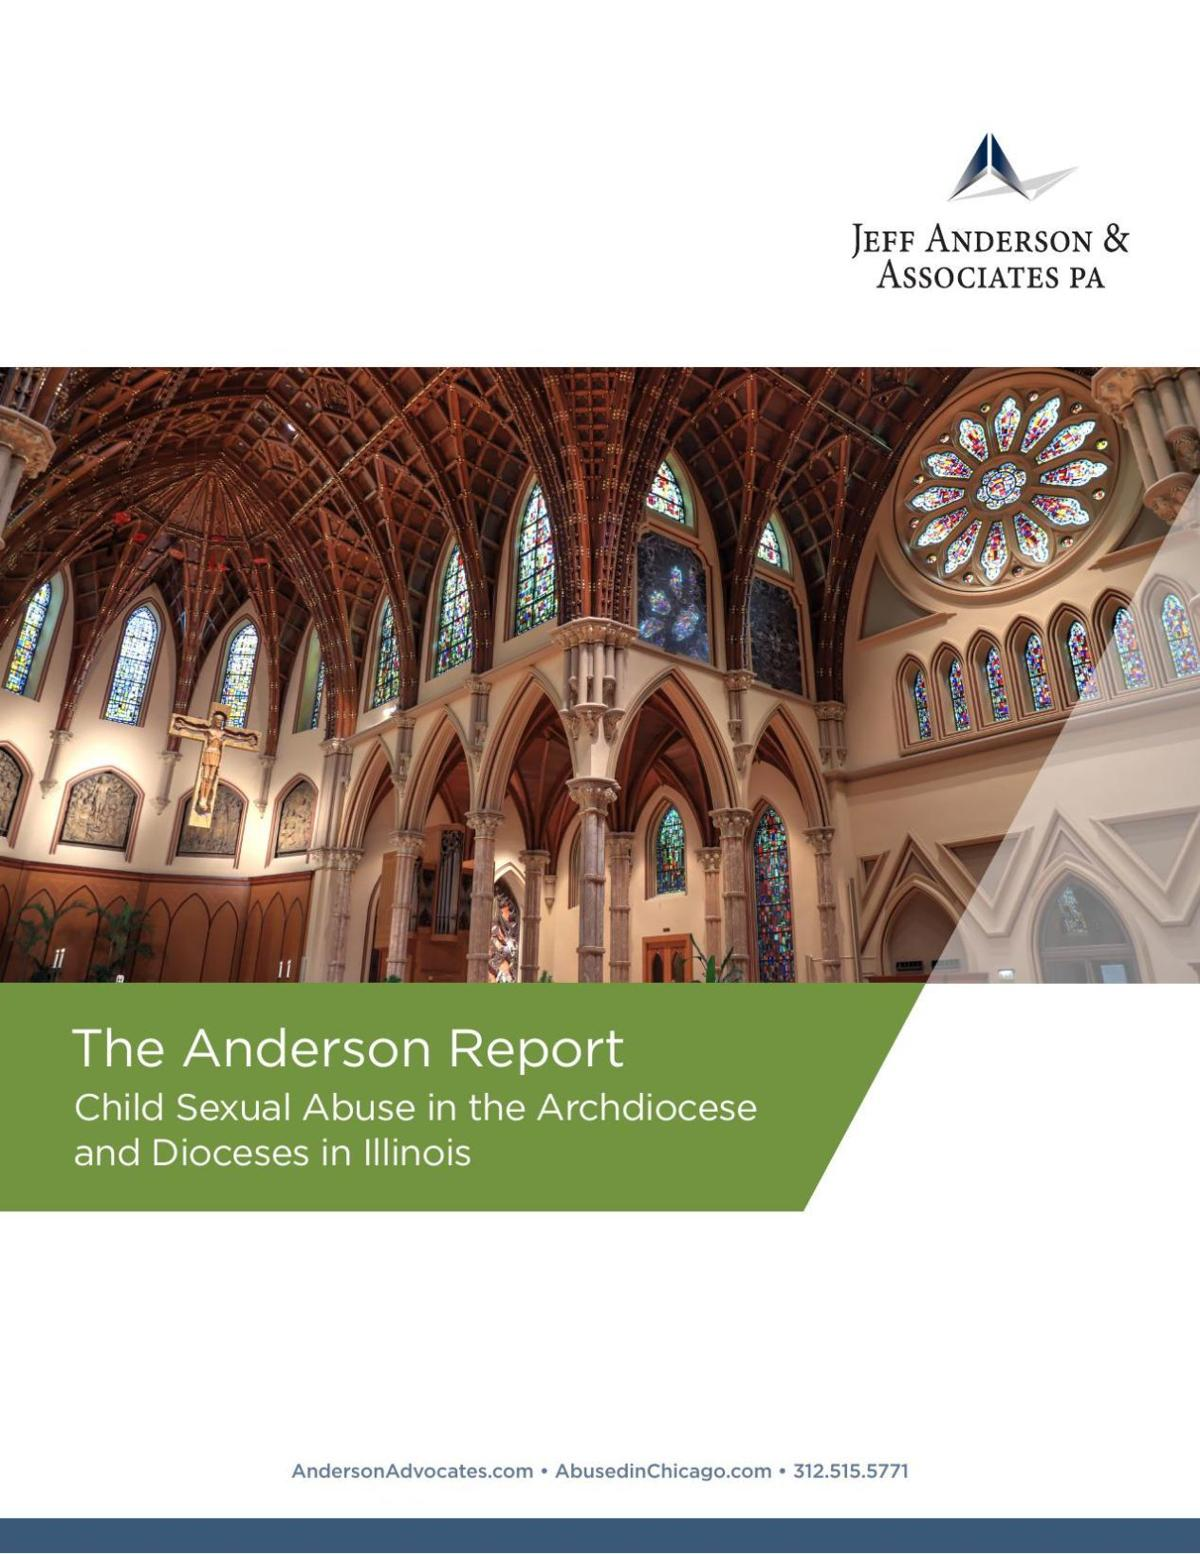 Child Sexual Abuse in the Archdiocese and dioceses in Illinois.pdf (20401.11 KiB)